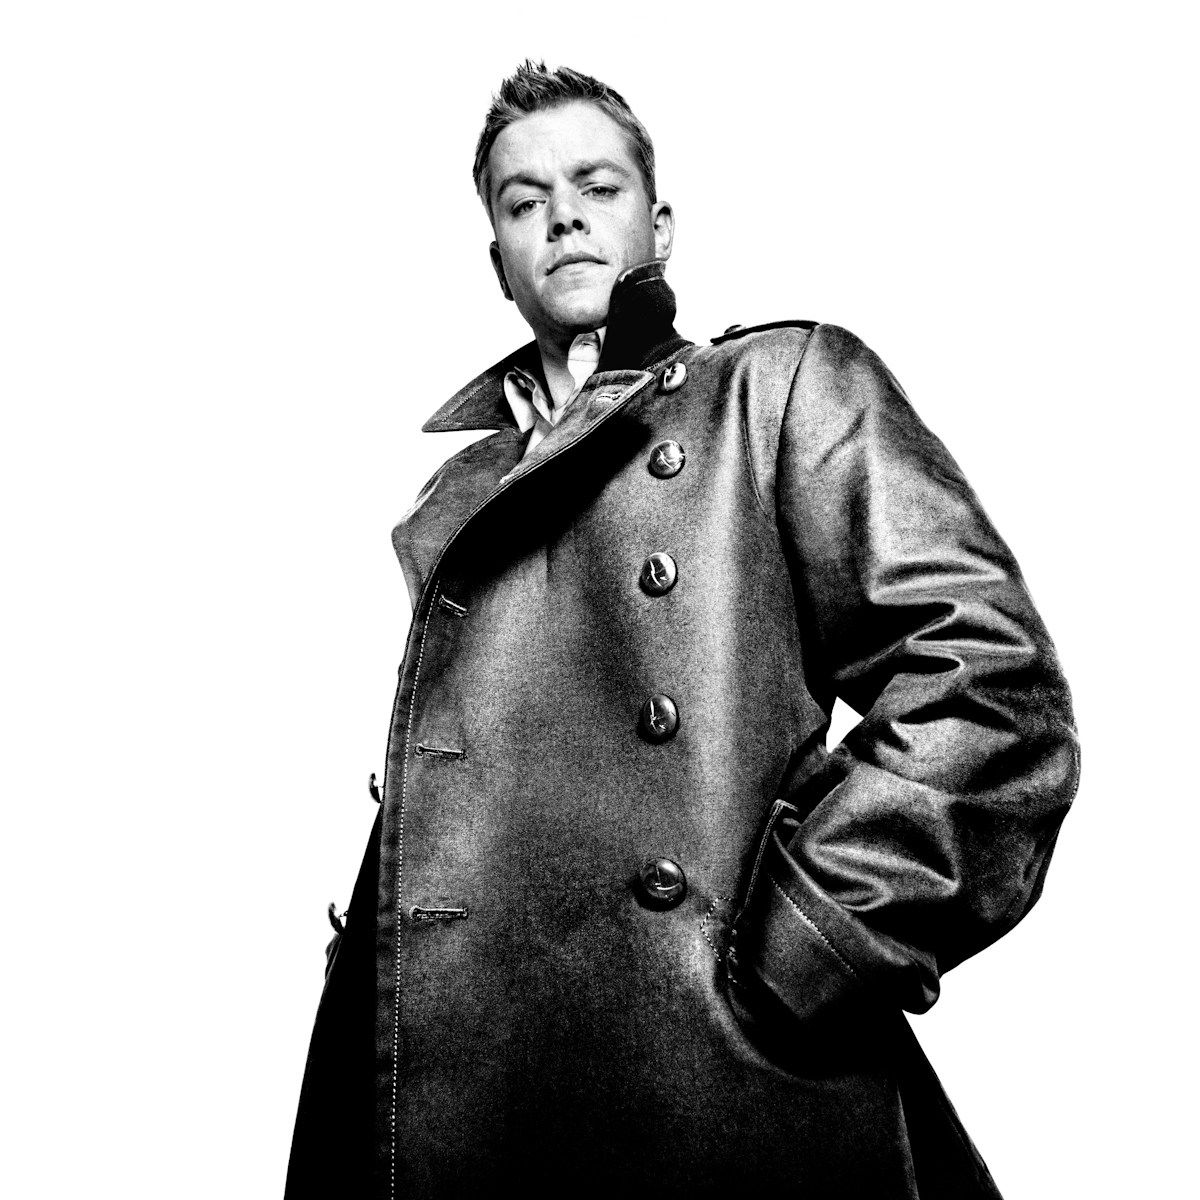 clm photography platon matt damon photos i love matt damon fansite news filmography photos campaigns videos and more about the star of good will hunting the bourne identity trilogy true grit